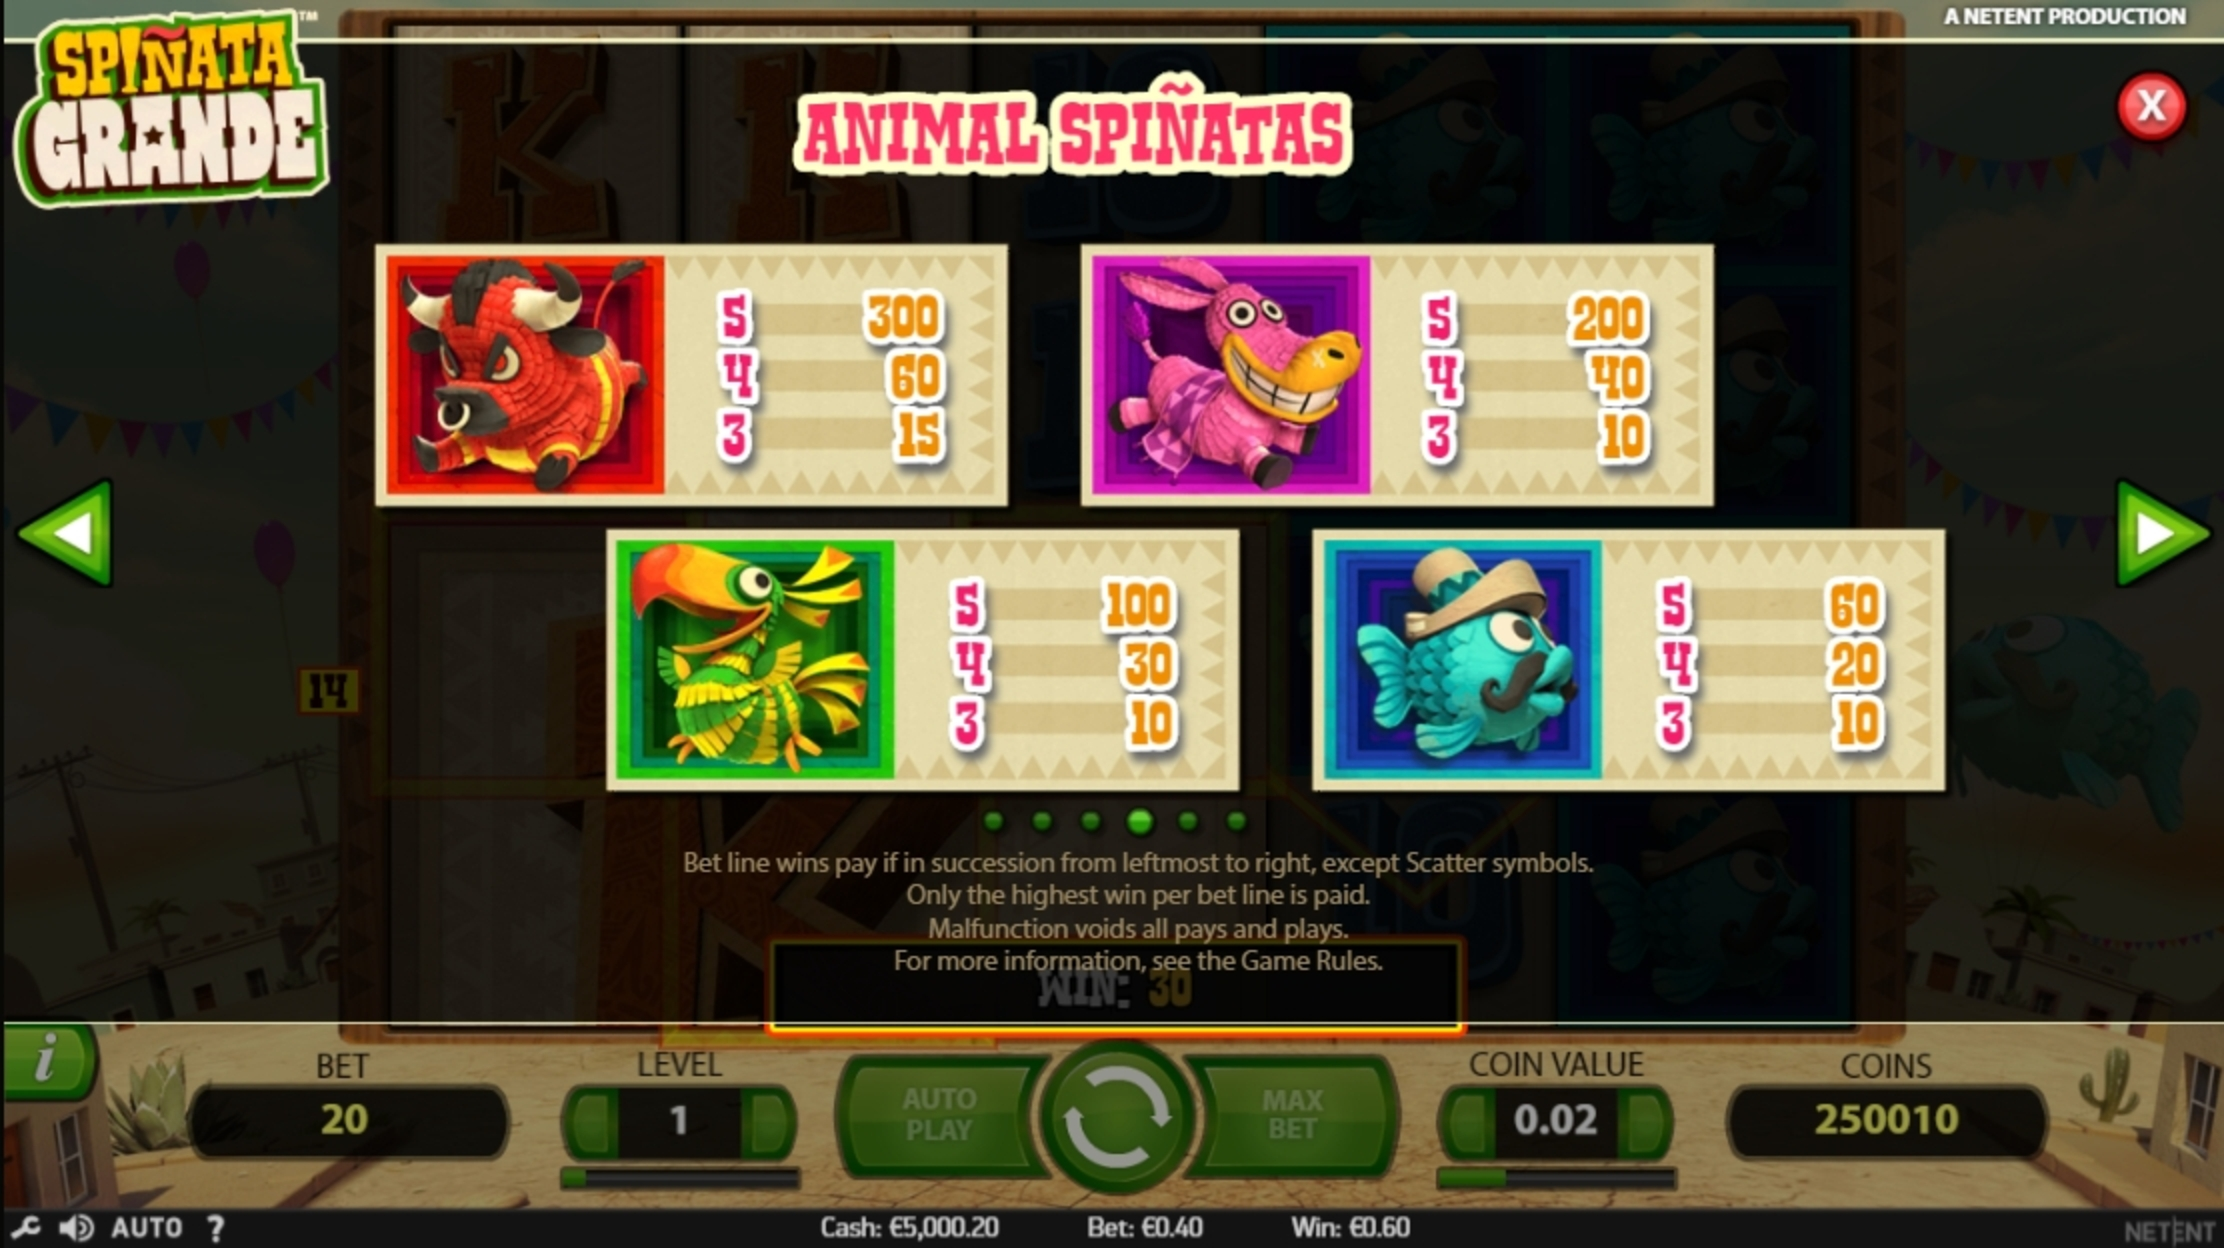 Info of Spinata Grande Slot Game by NetEnt